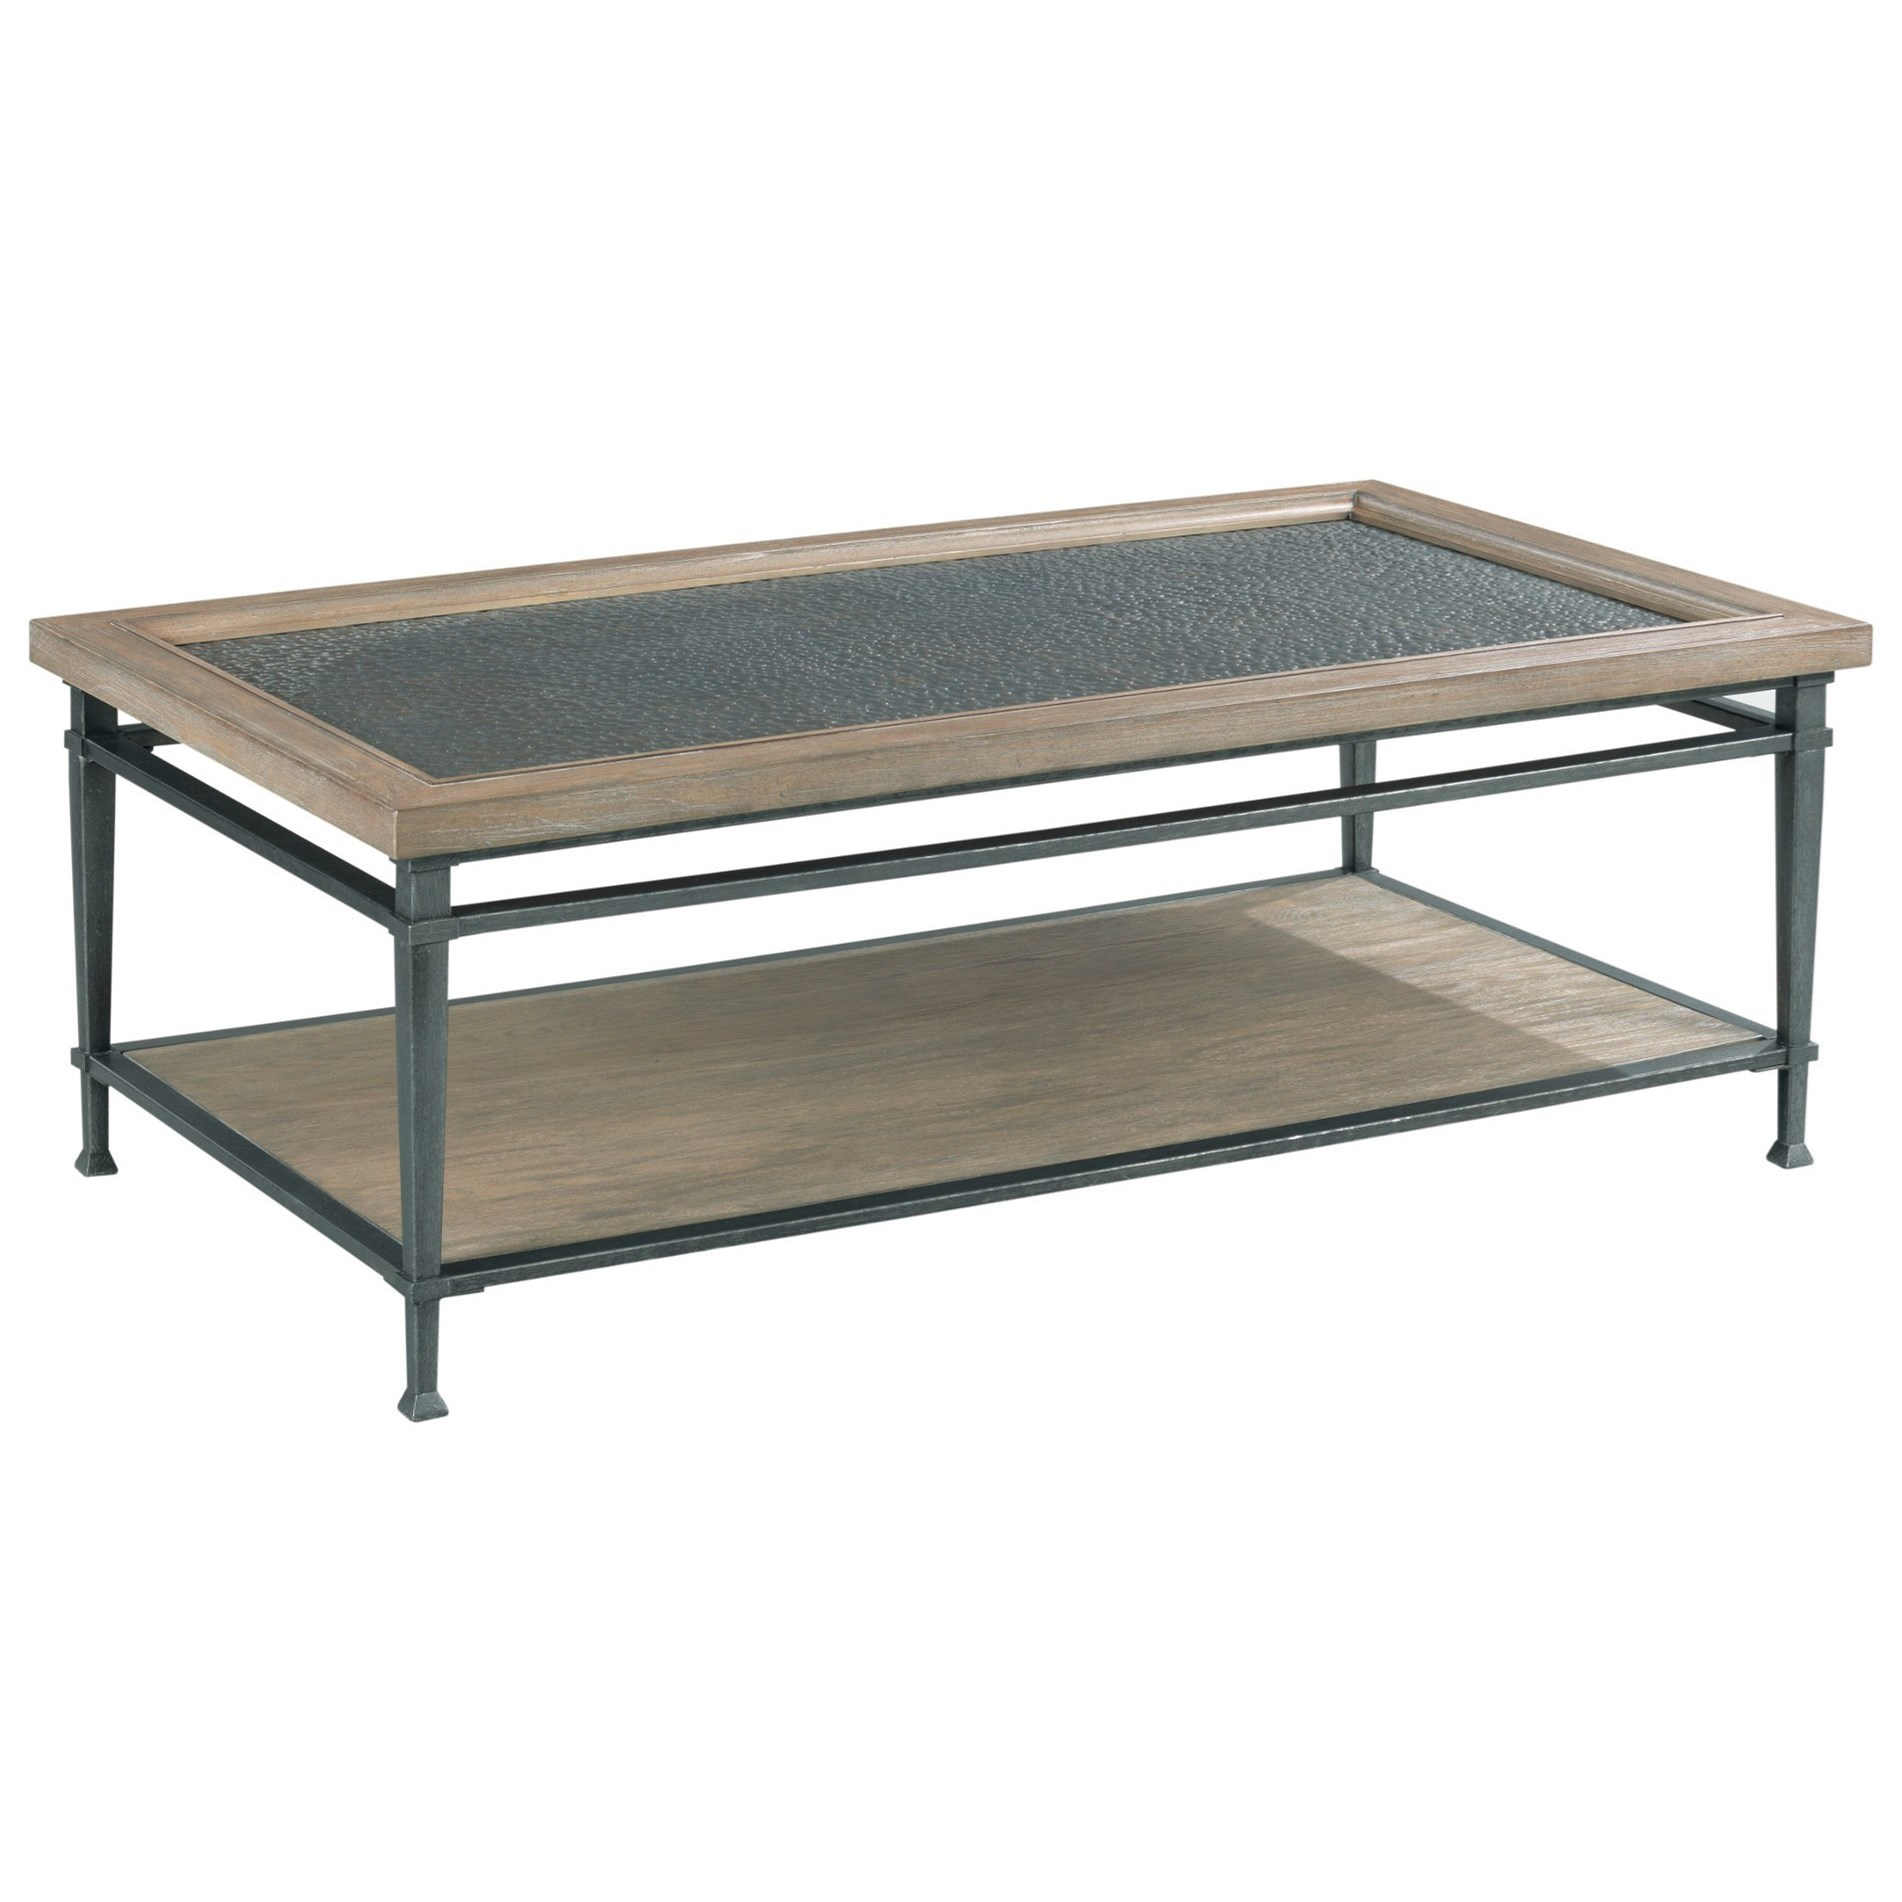 Austin Rectangular Coffee Table by Hammary at Jordan's Home Furnishings